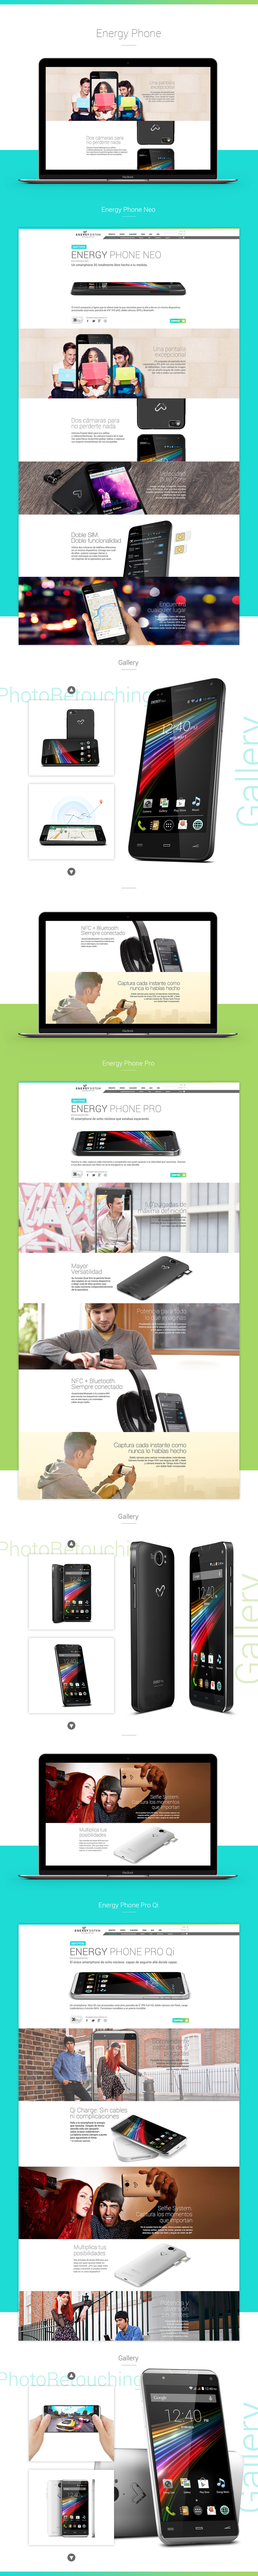 Product Landing Page -1